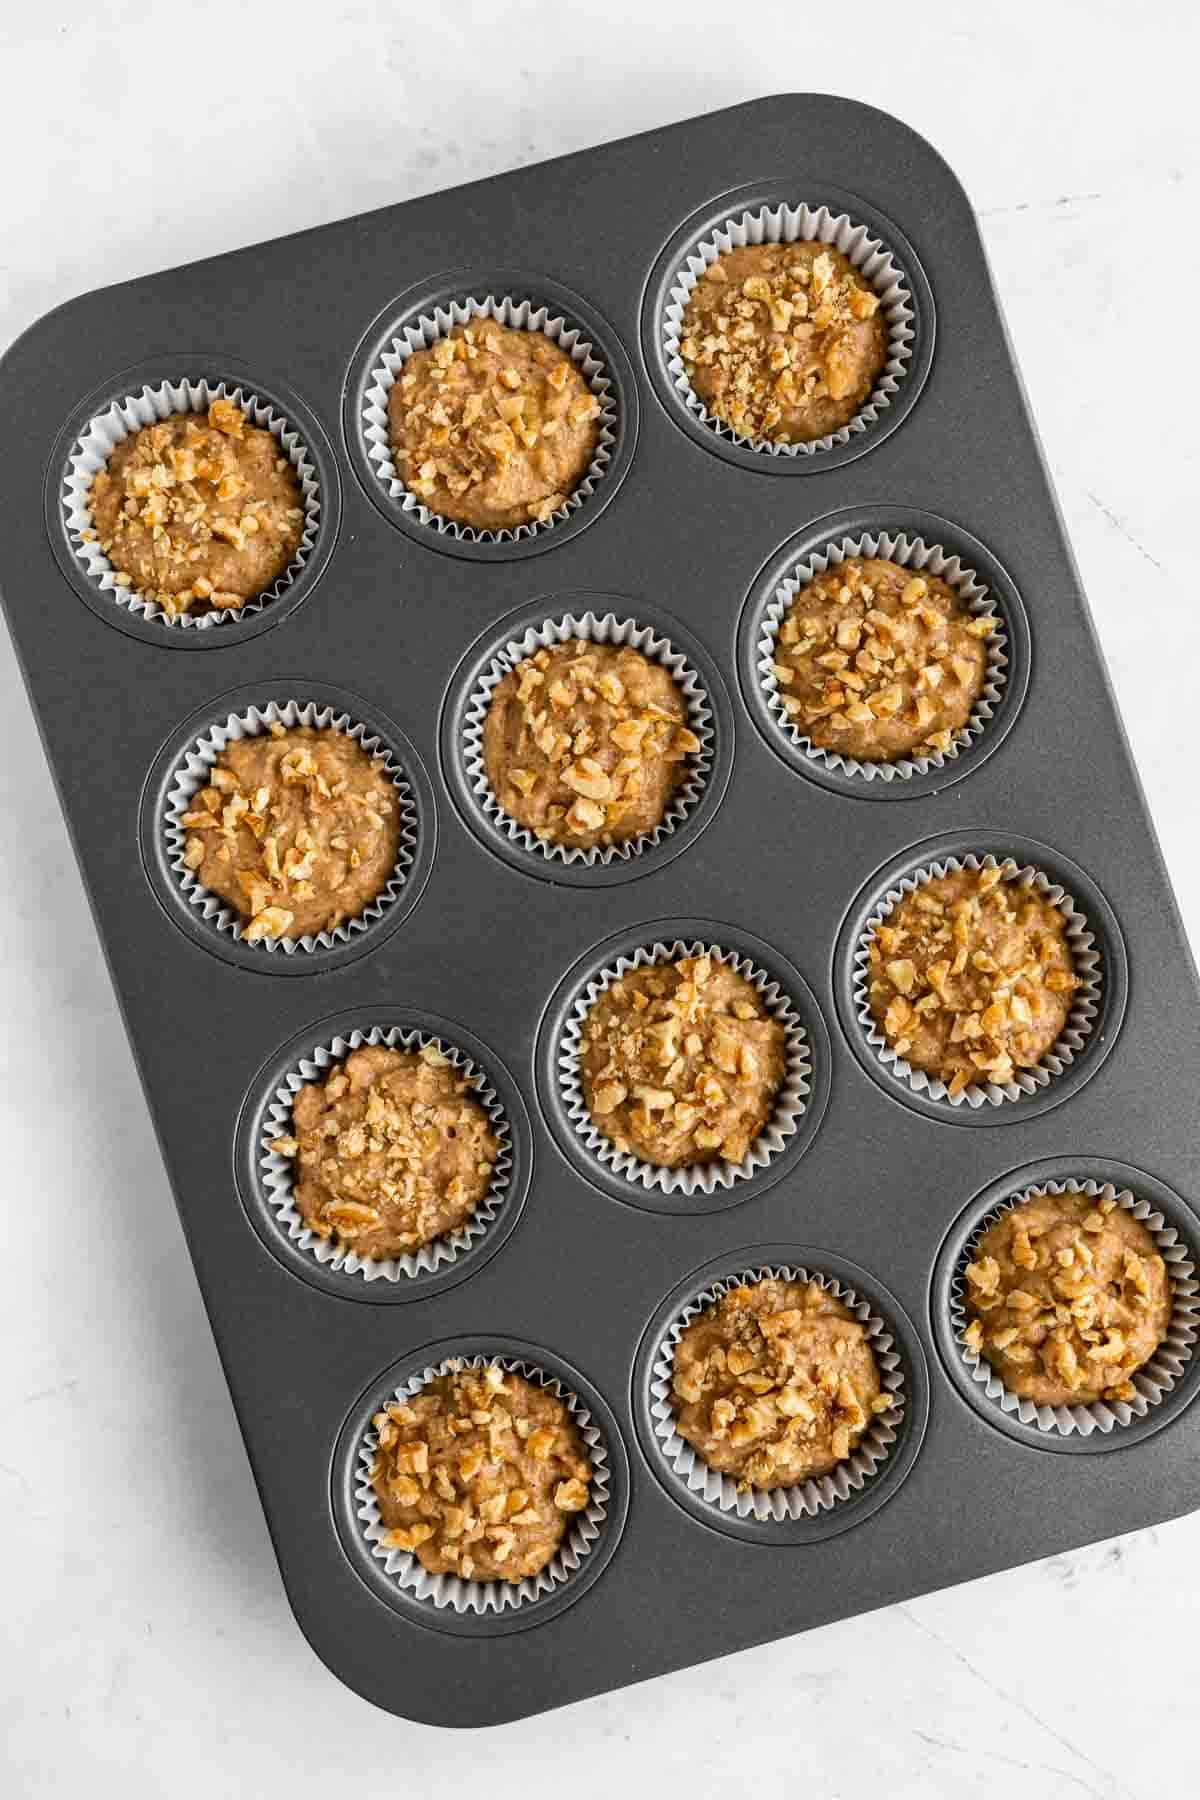 unbaked muffin batter inside a muffin tin